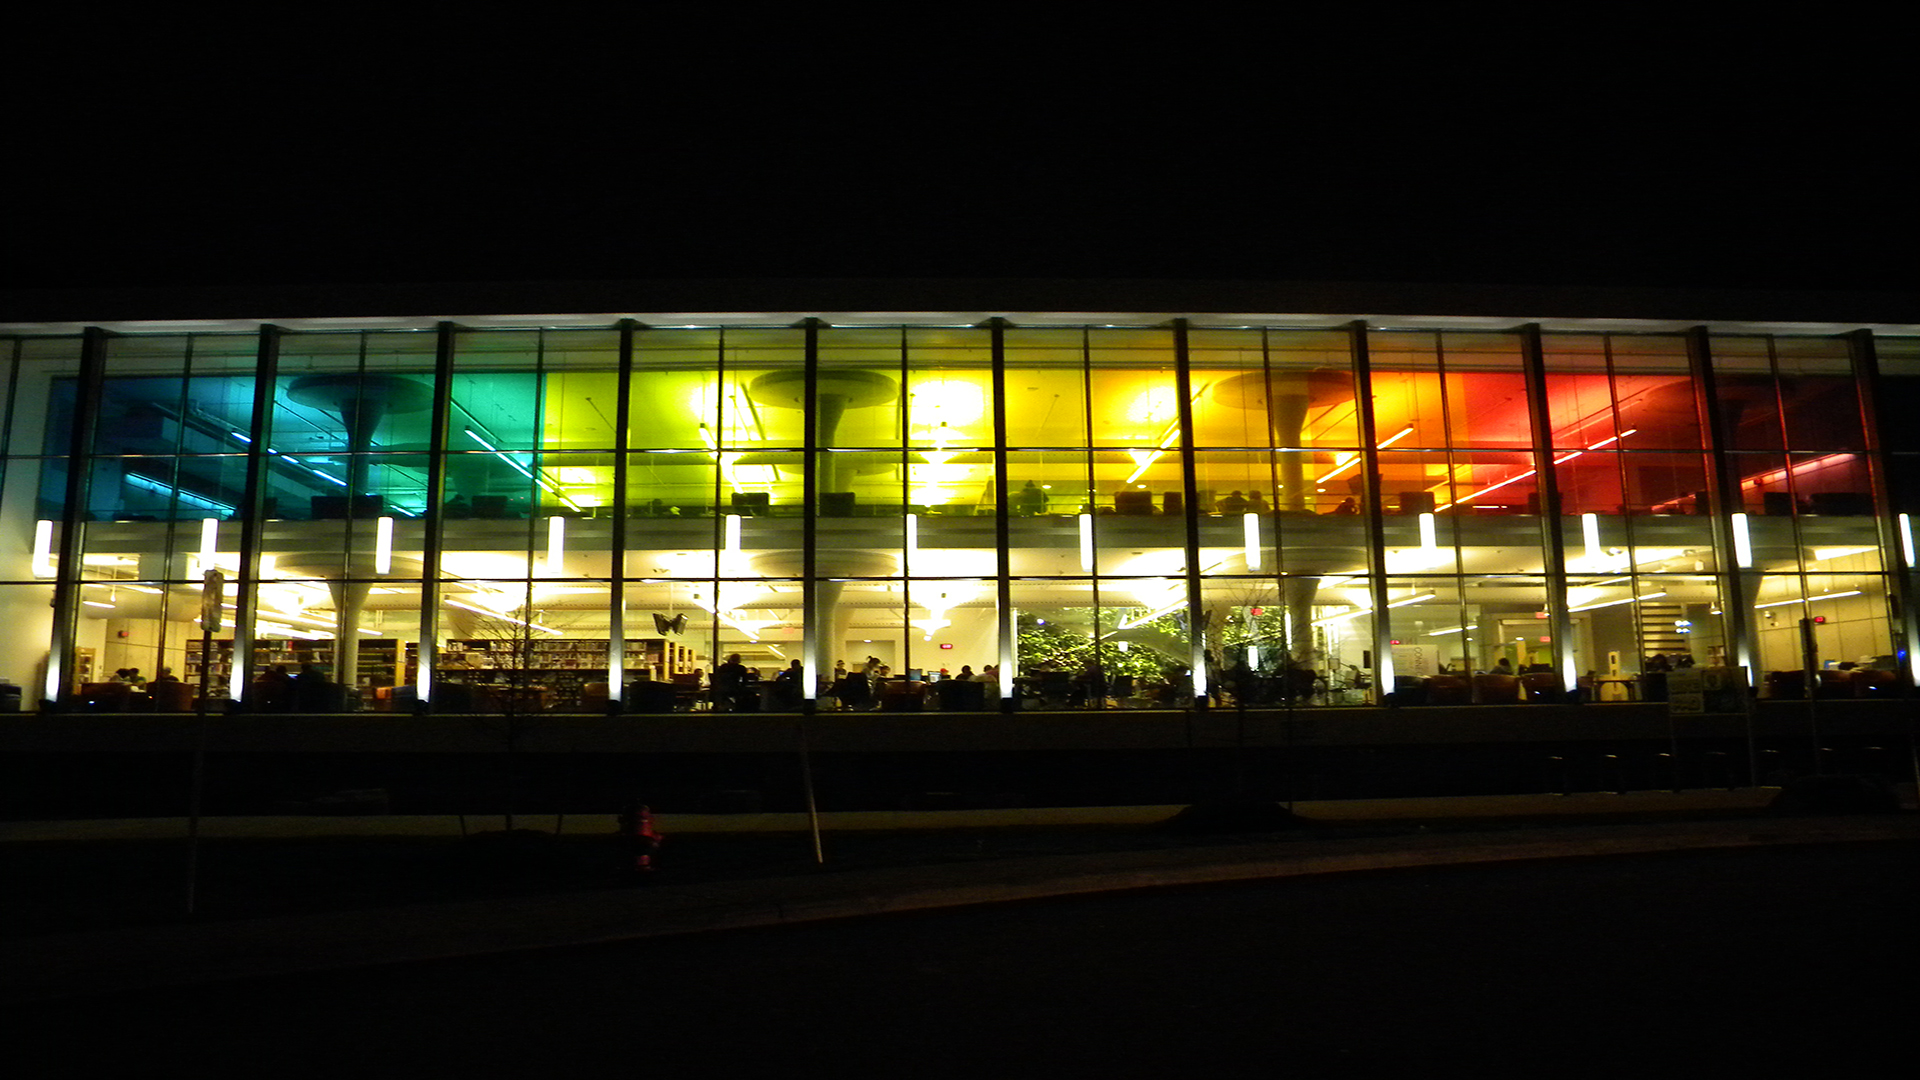 Cummings Library and Collaboratory at night